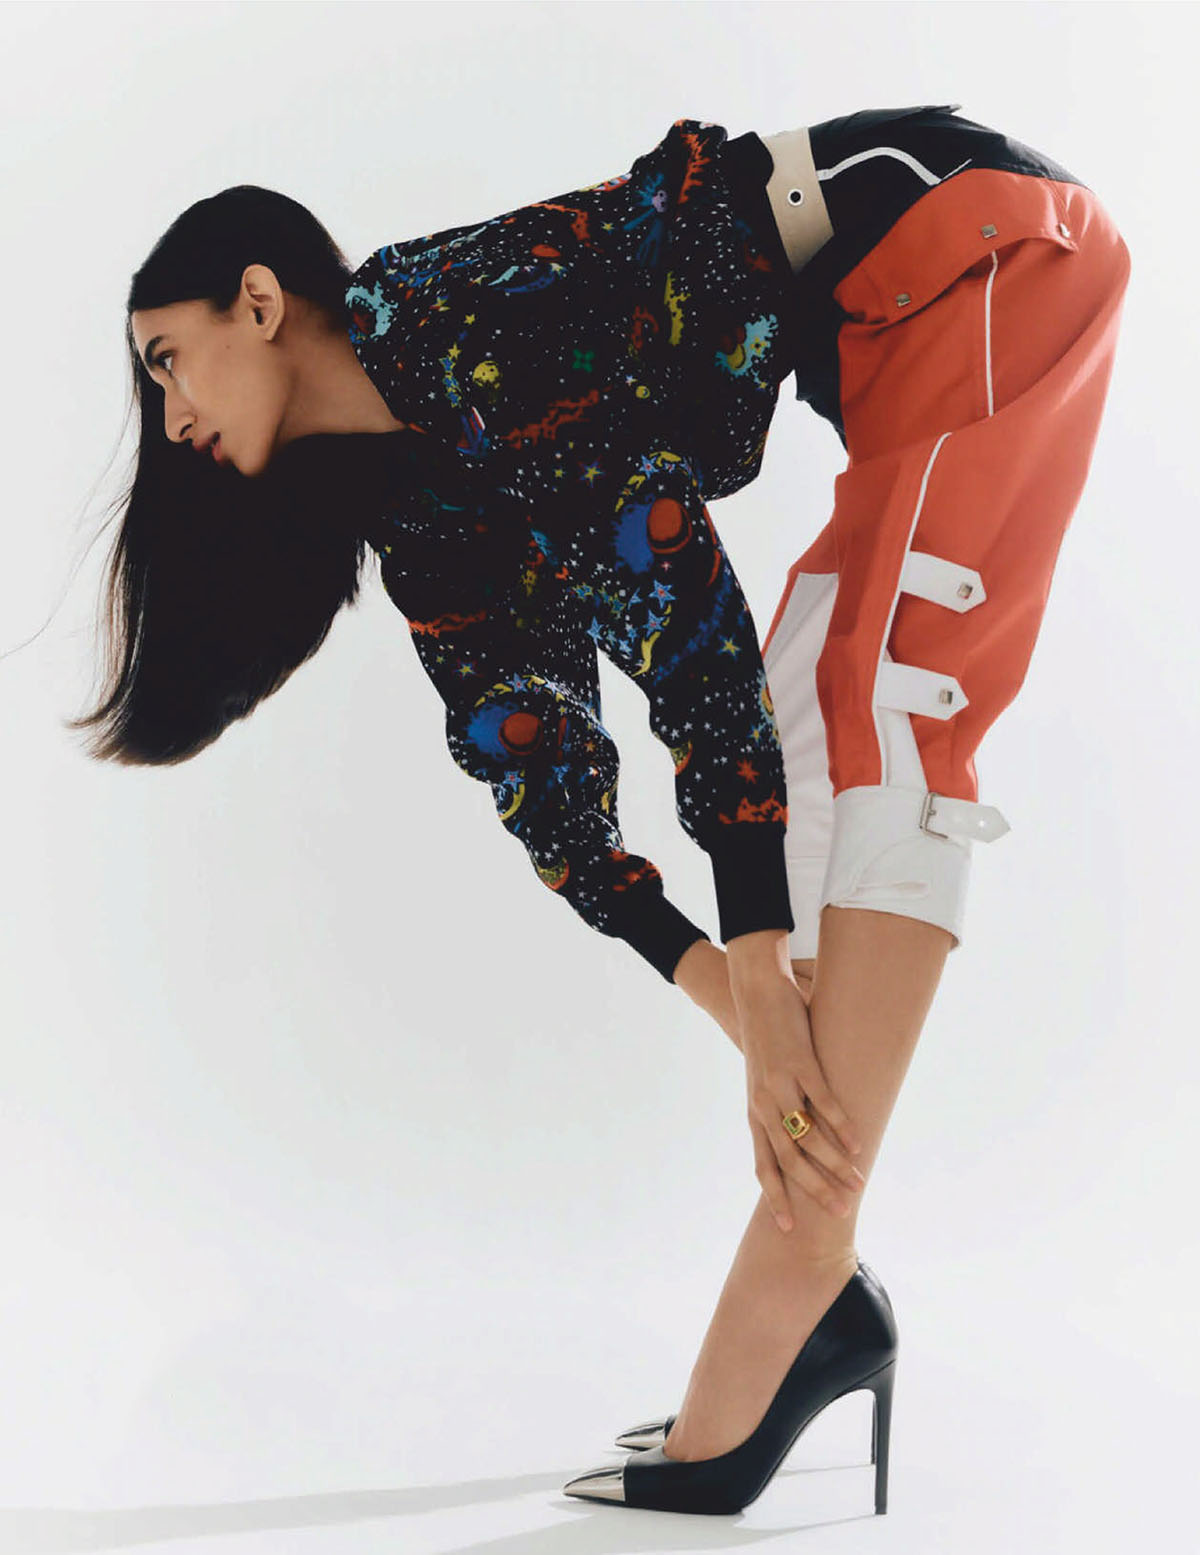 ''The Power of Pants'' by Petros for Vogue India February 2021